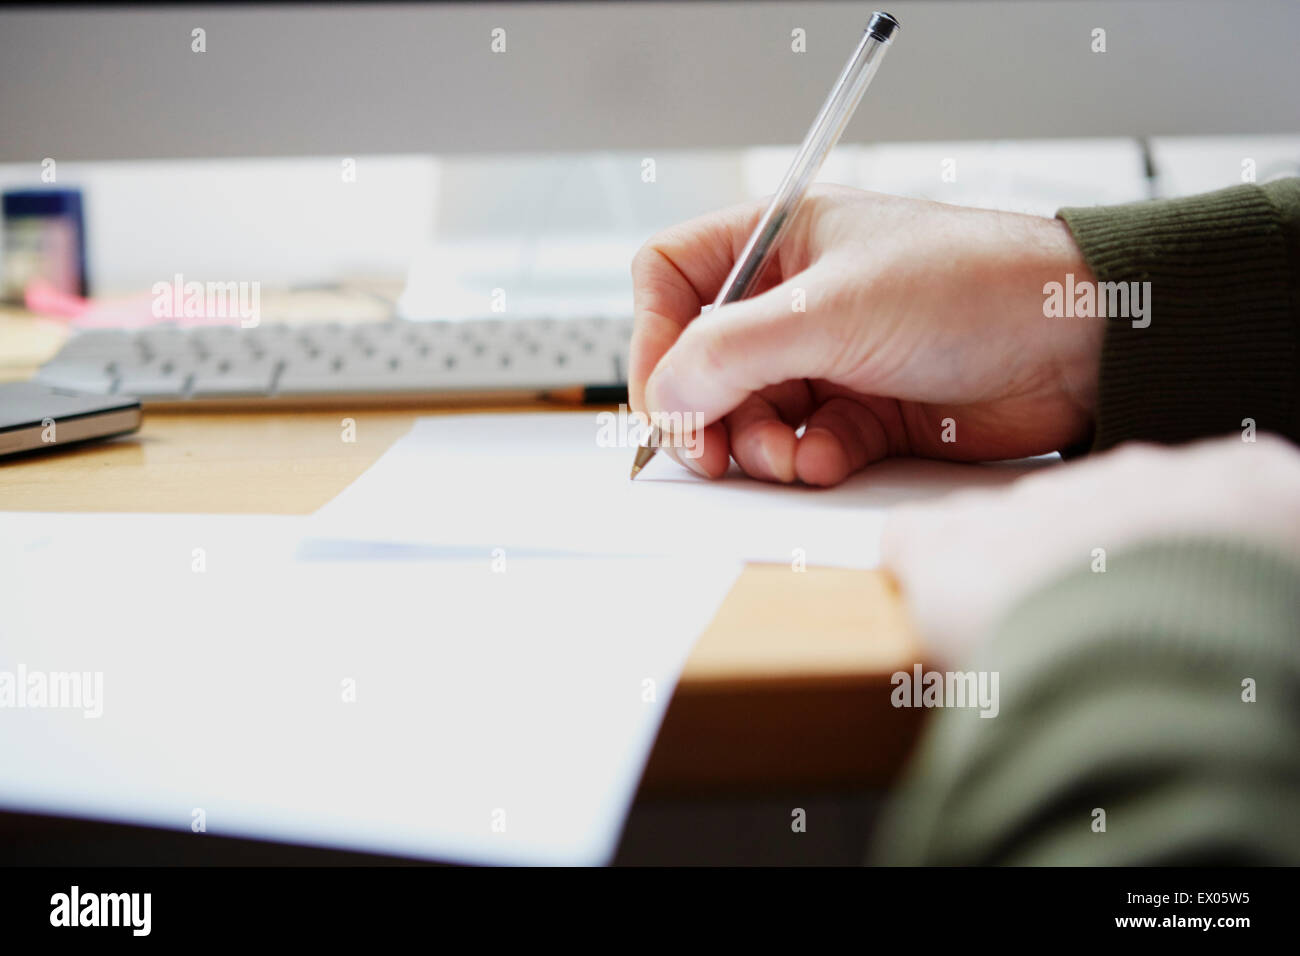 Man writing on paper with pen - Stock Image